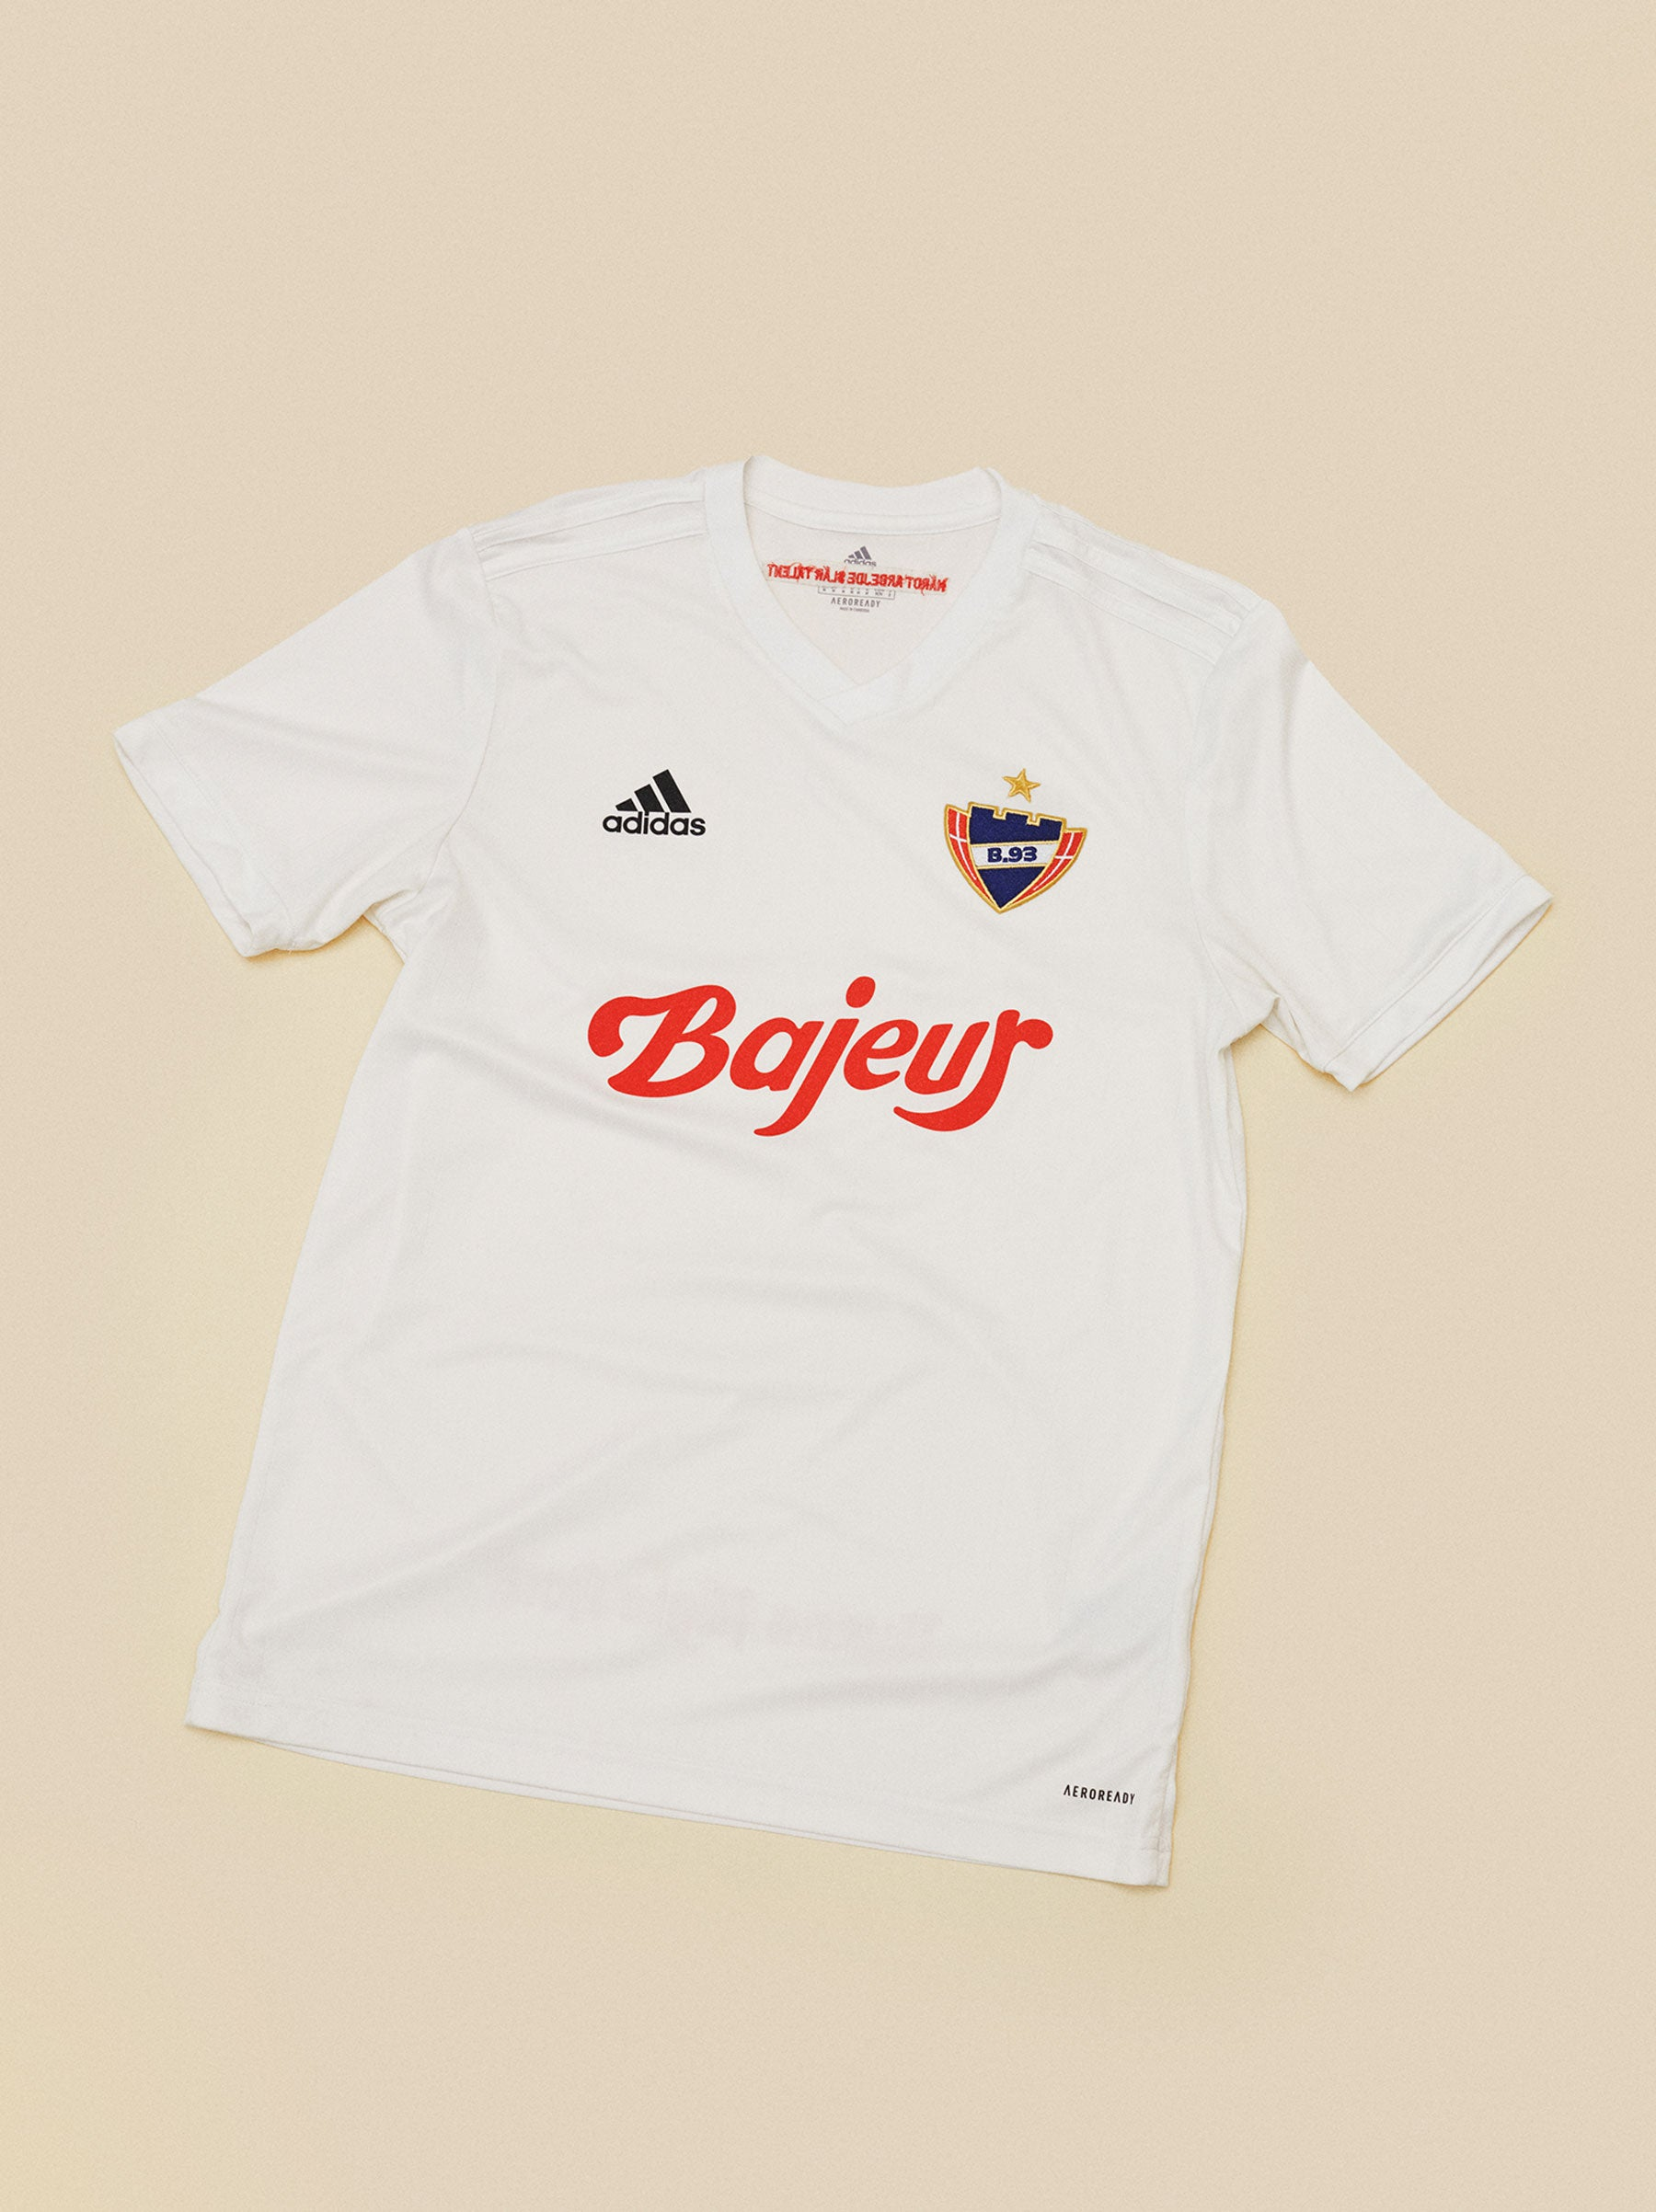 B93 Bajeur<br>Home Jersey